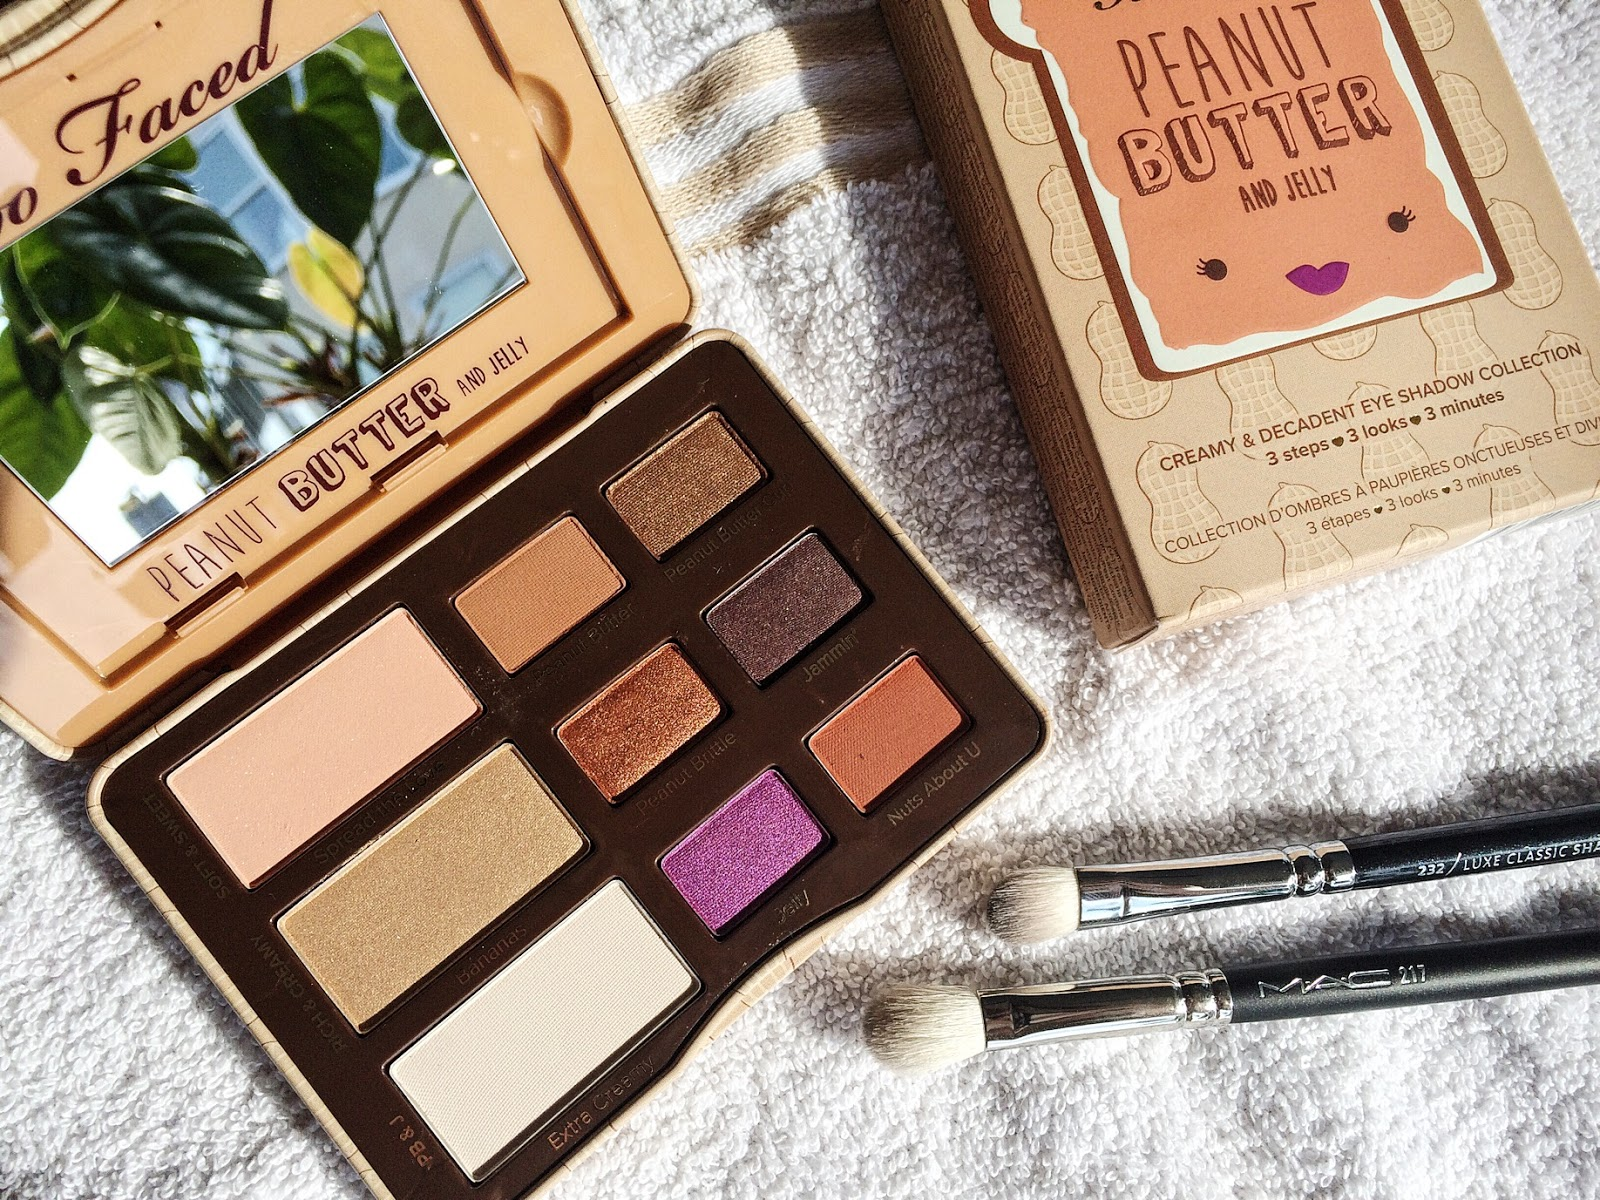 Peanut butter and jelly eyeshadow palette | Too Faced